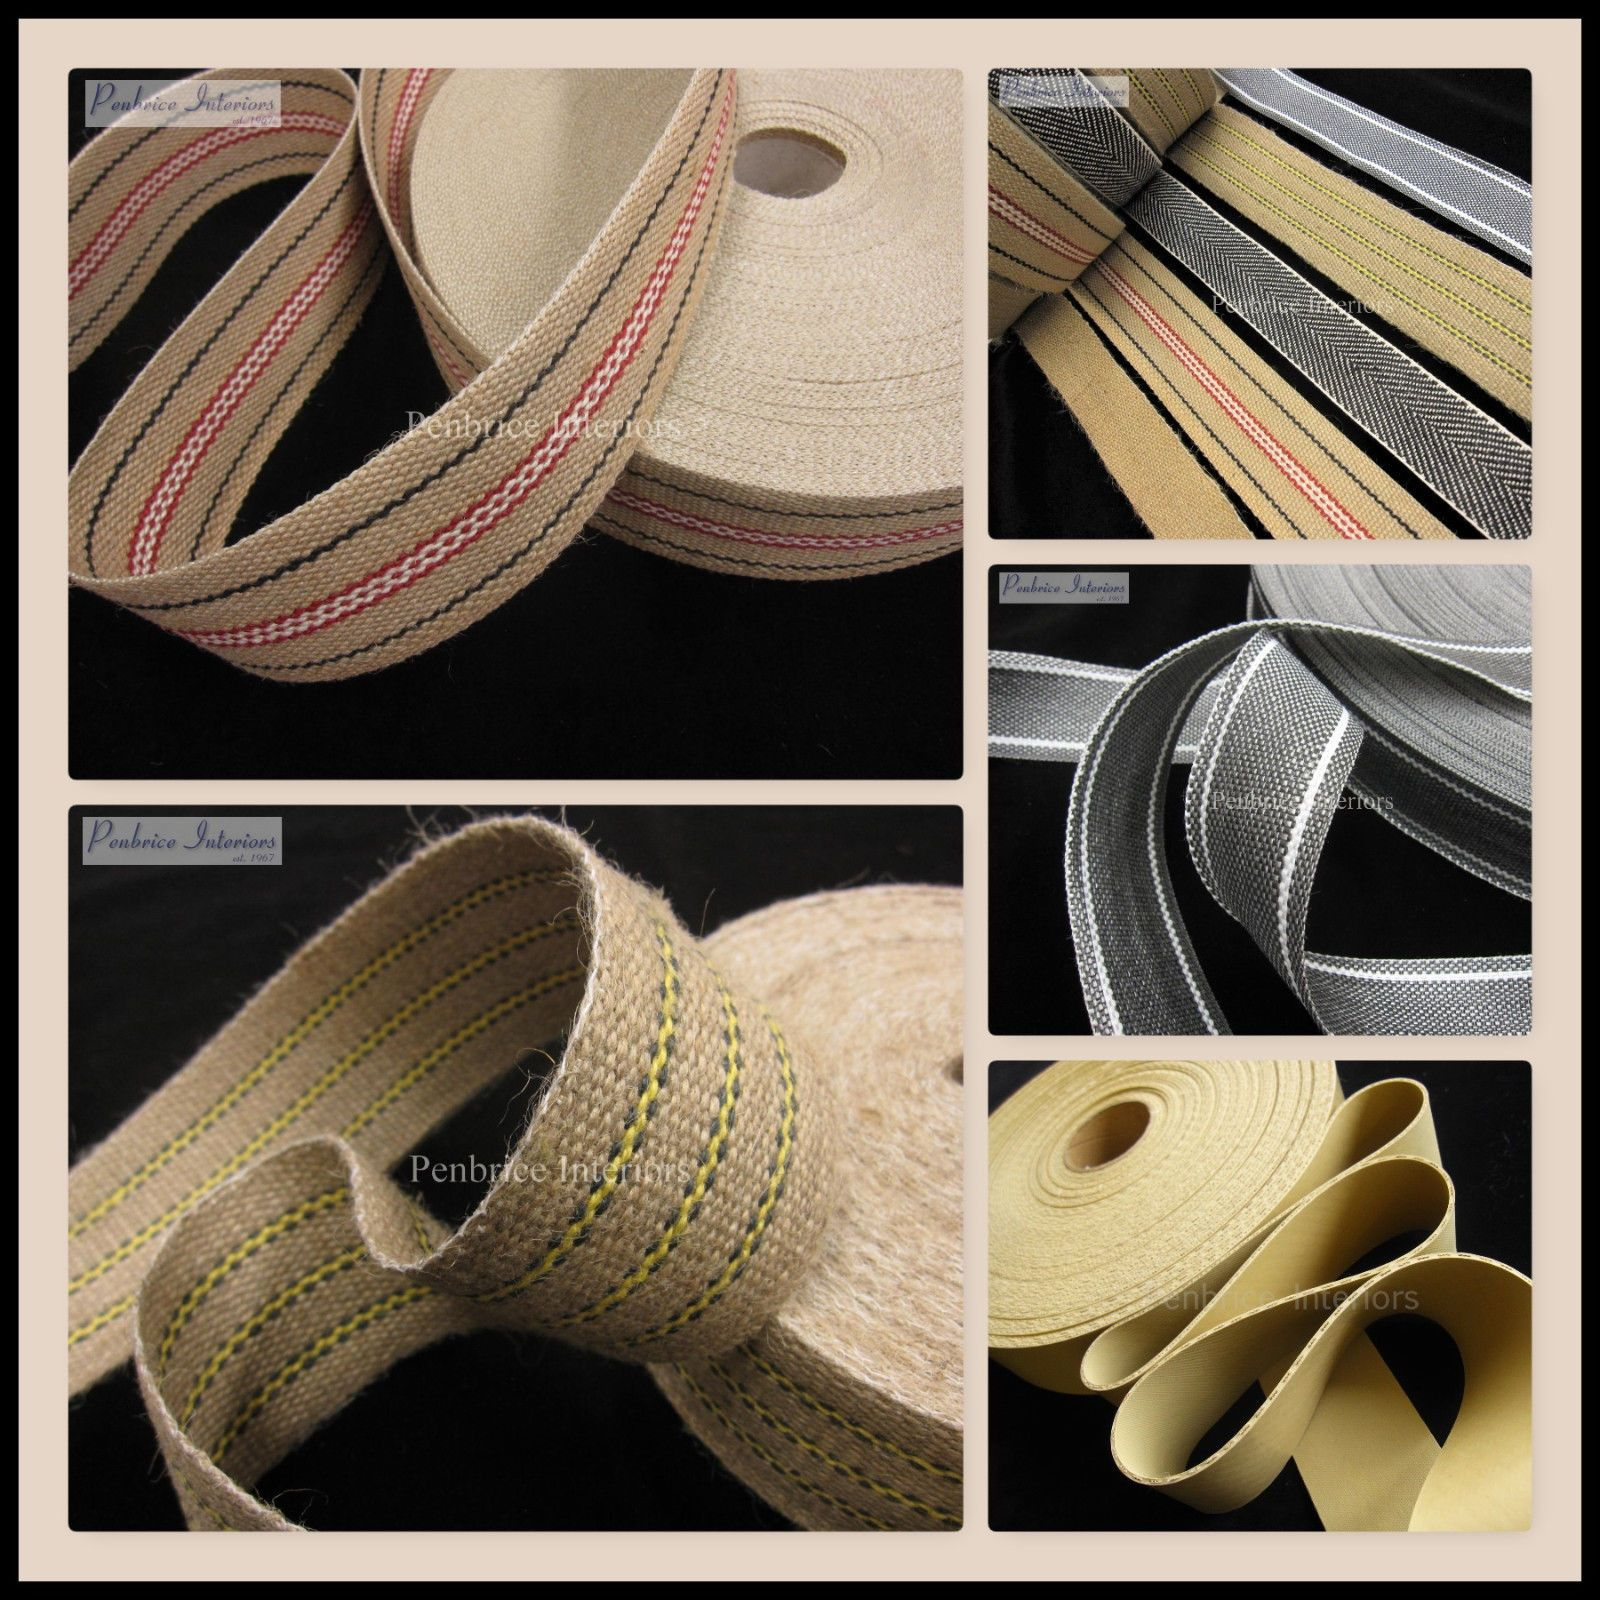 Upholstery chair webbing Traditional jute woven craft sewing tapes